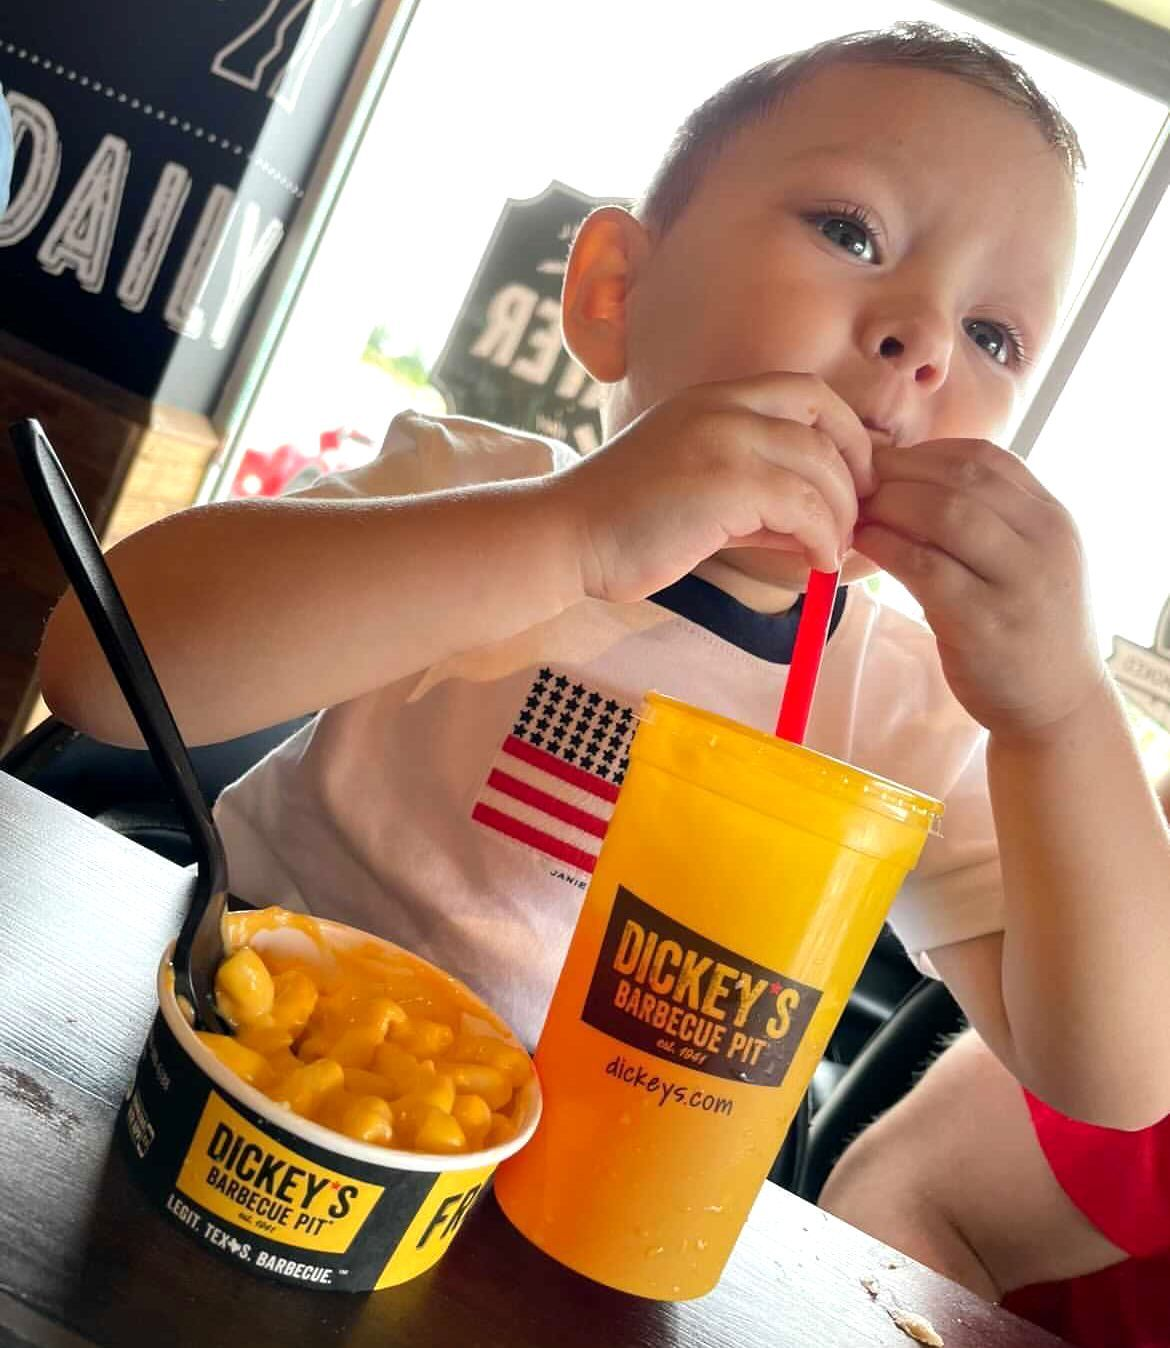 Have a Smokin' Back to School Season with Dickey's Legit. Texas. Barbecue.™  Texas-style barbecue restaurant celebrates back to school with Family Pack discount and Kids Eat Free Sunday deal